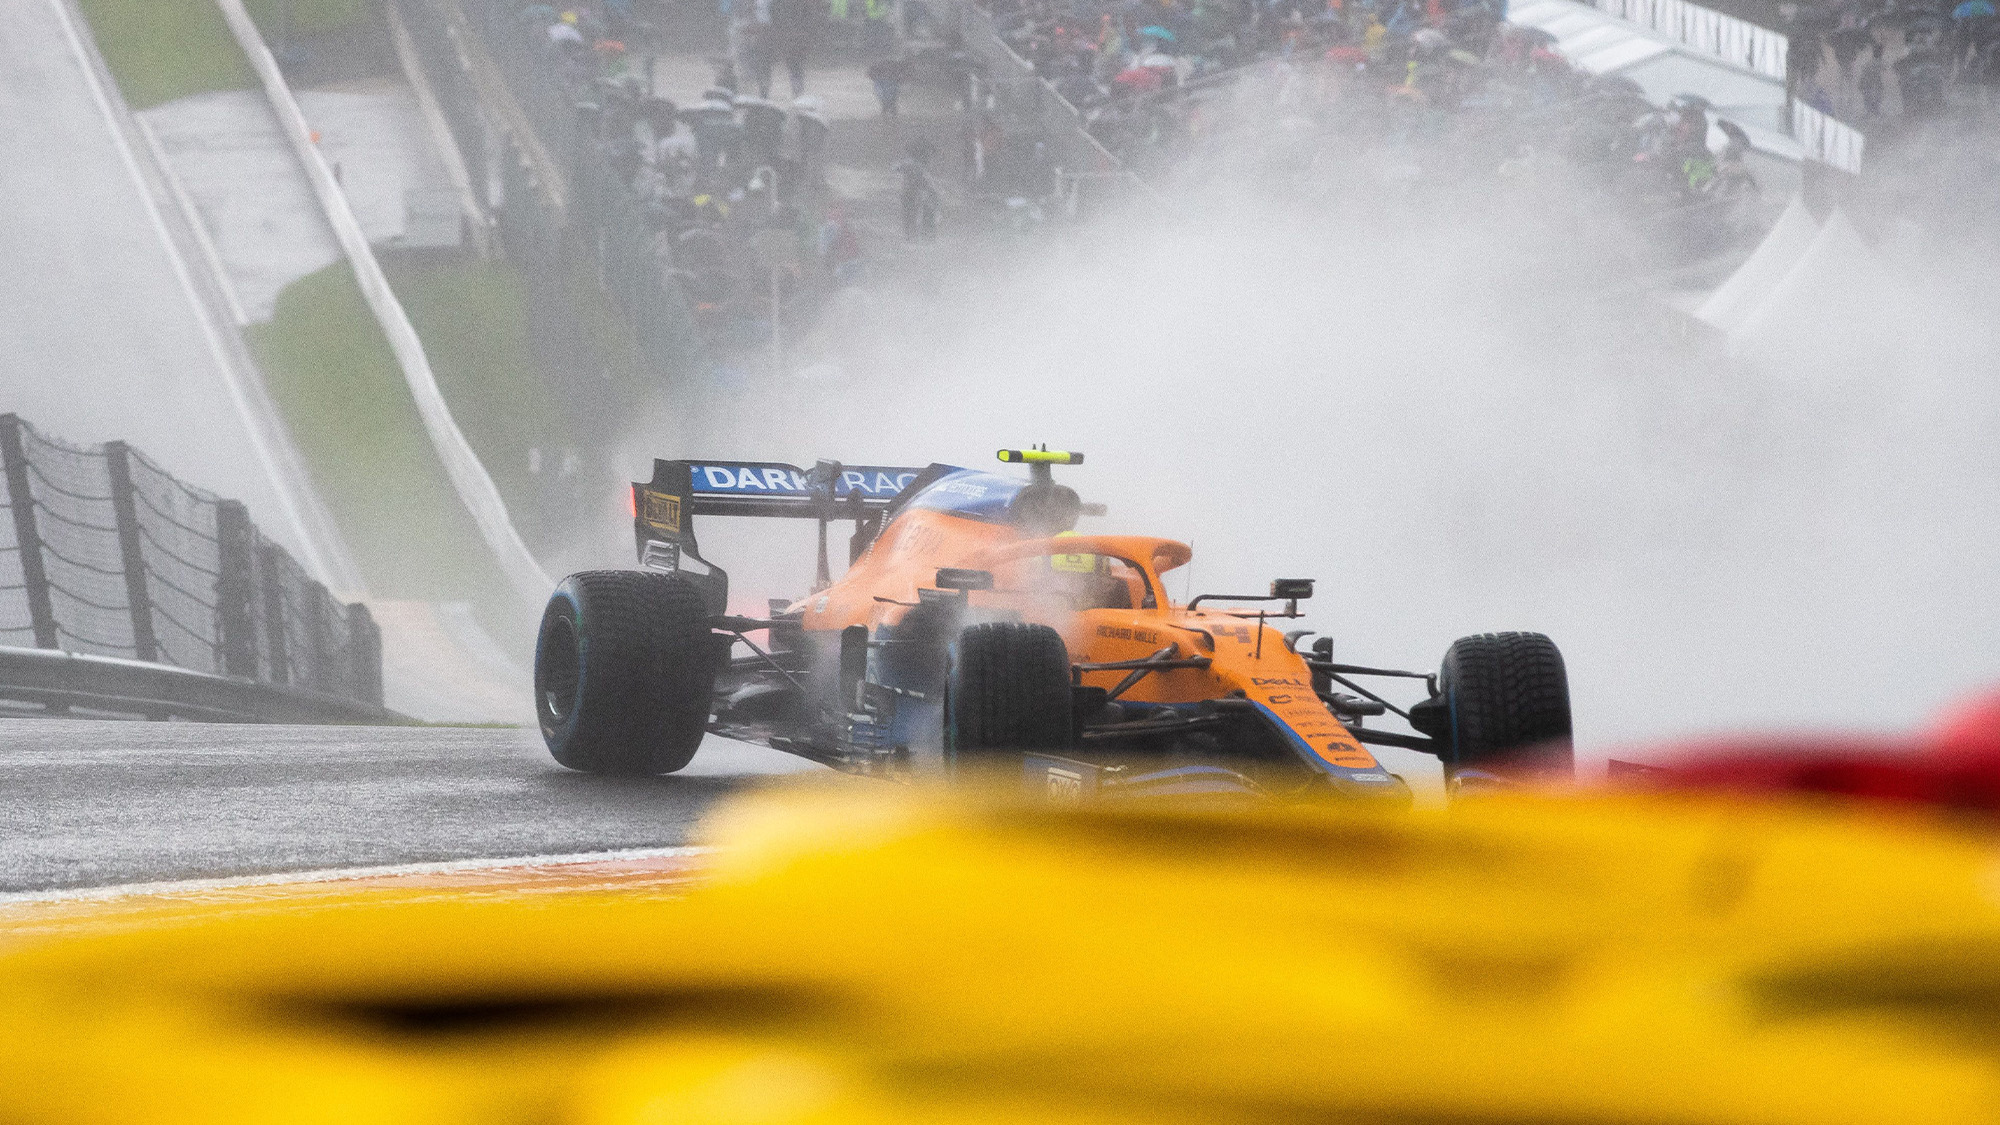 Lando Norris spins off in qualifying for the 2021 Belgian Grand Prix